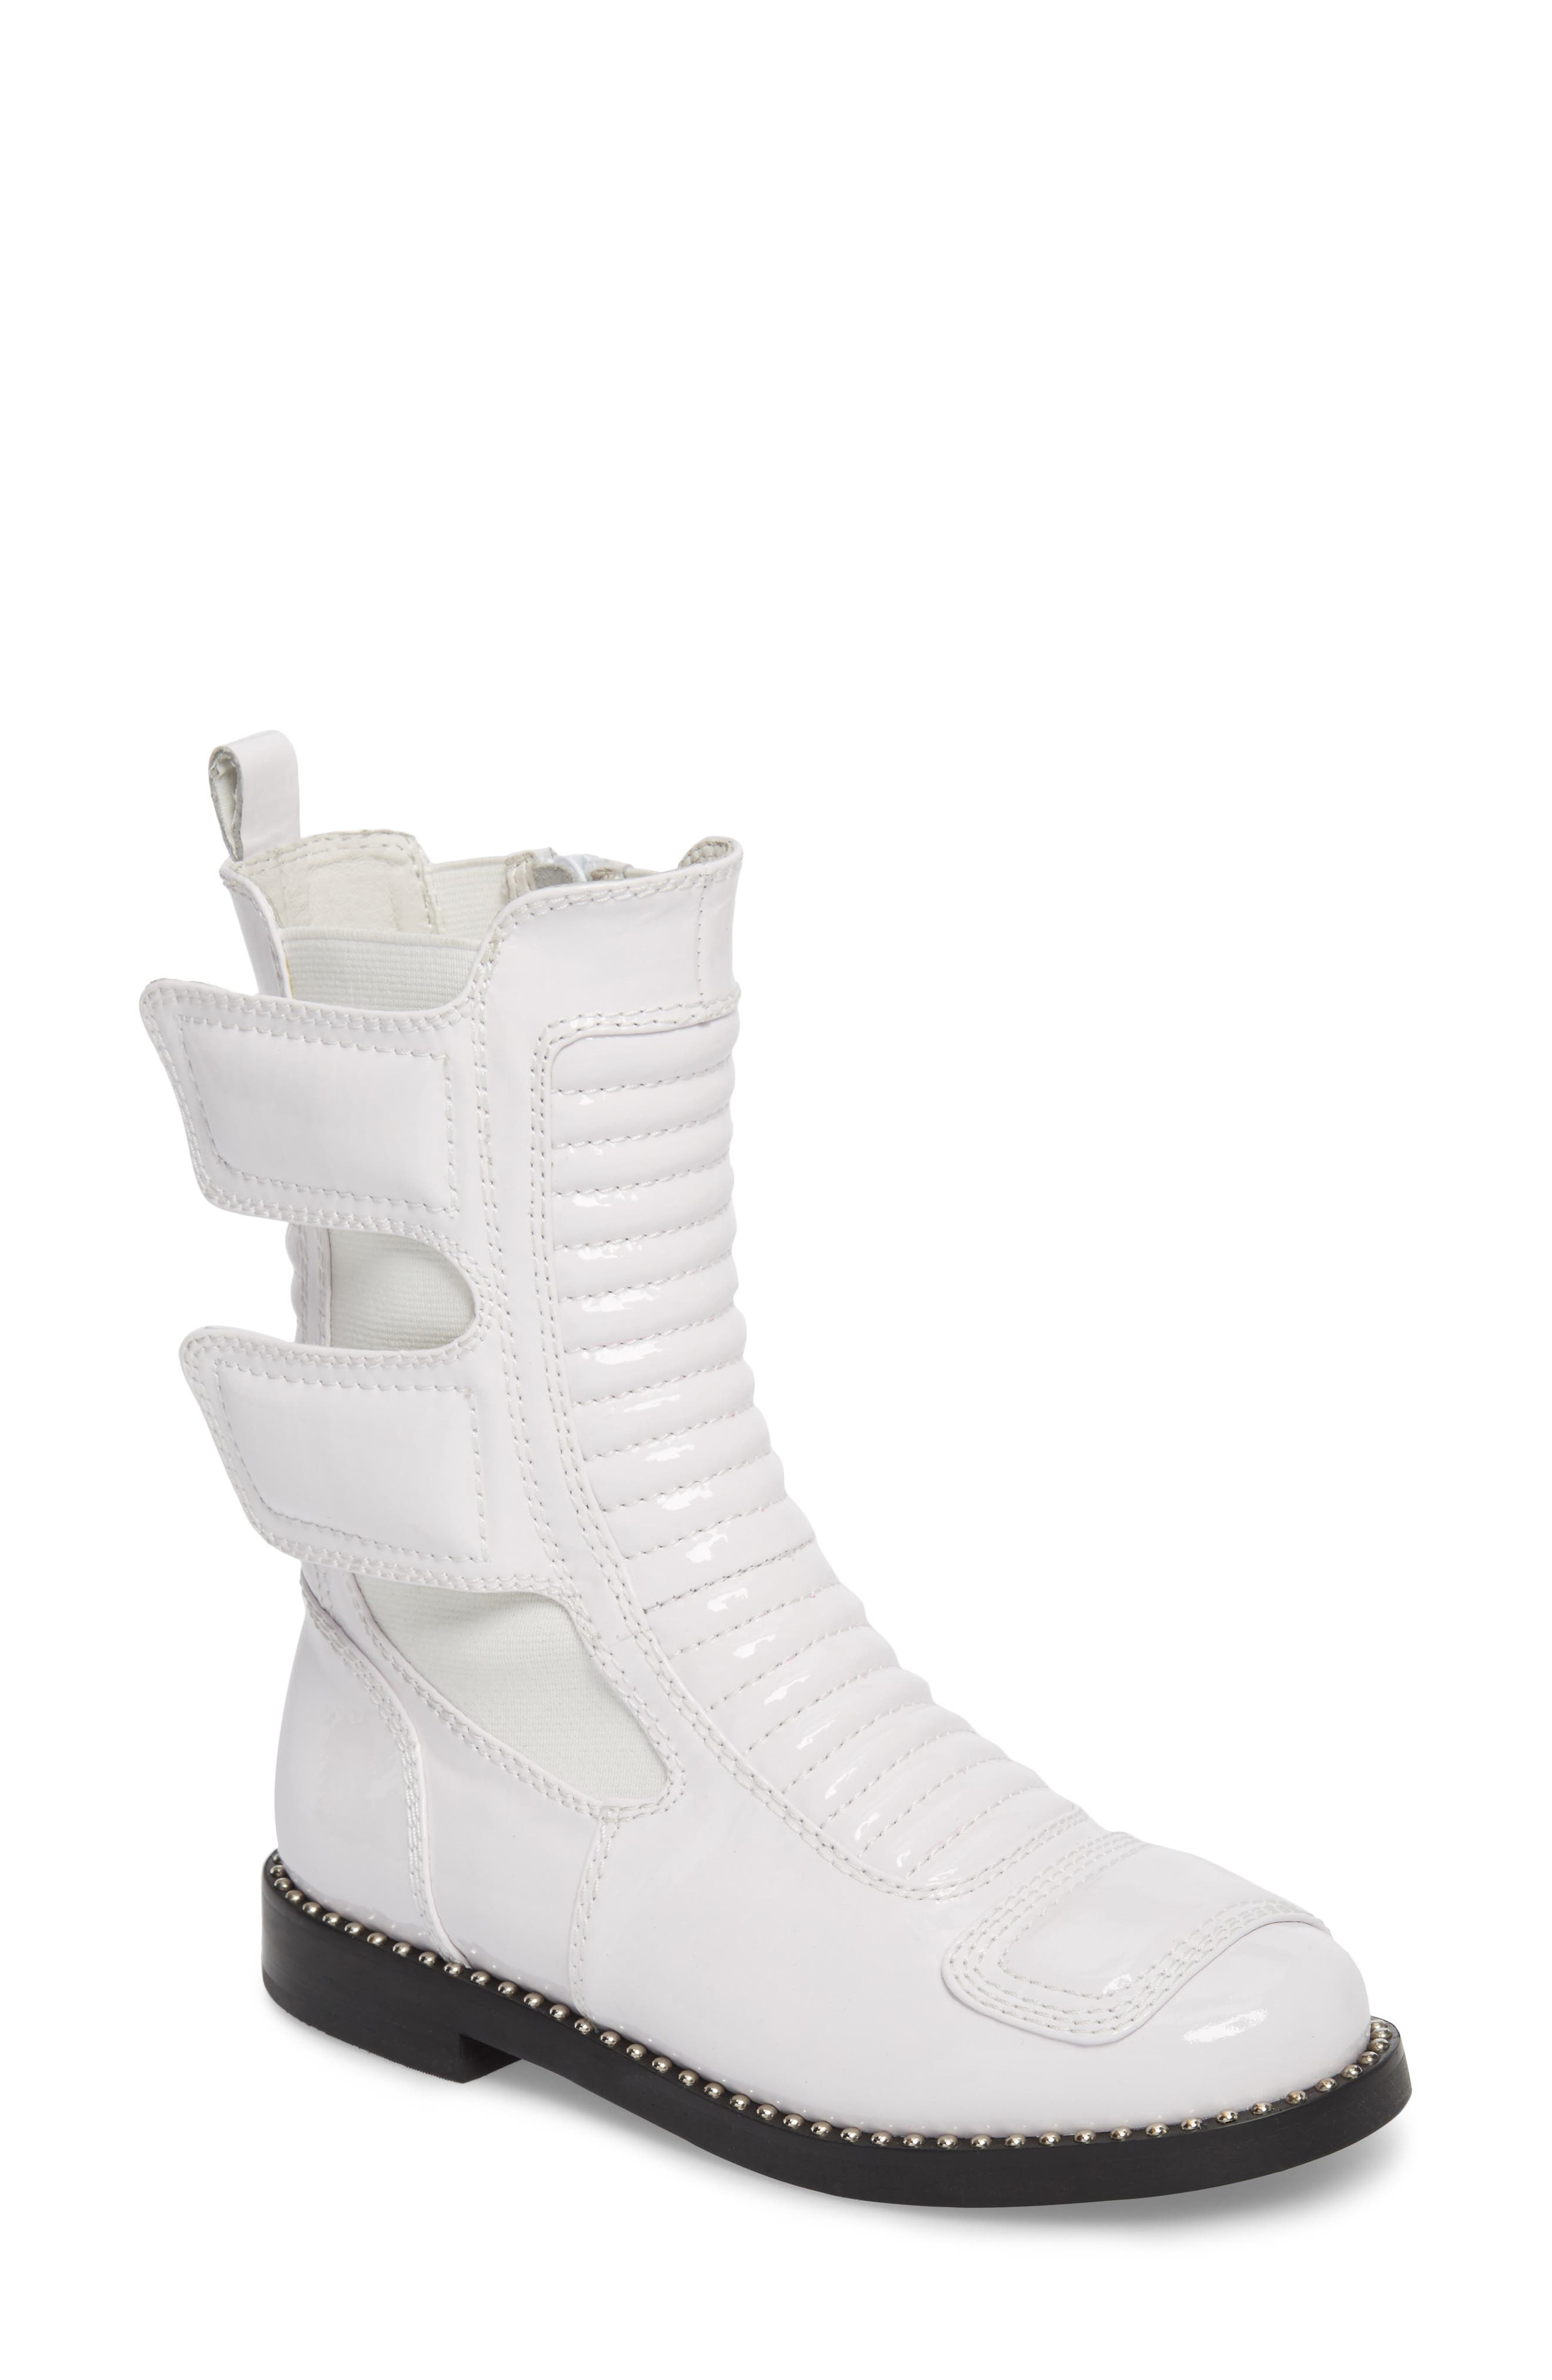 Police Boot,                             Main thumbnail 1, color,                             White Patent Leather